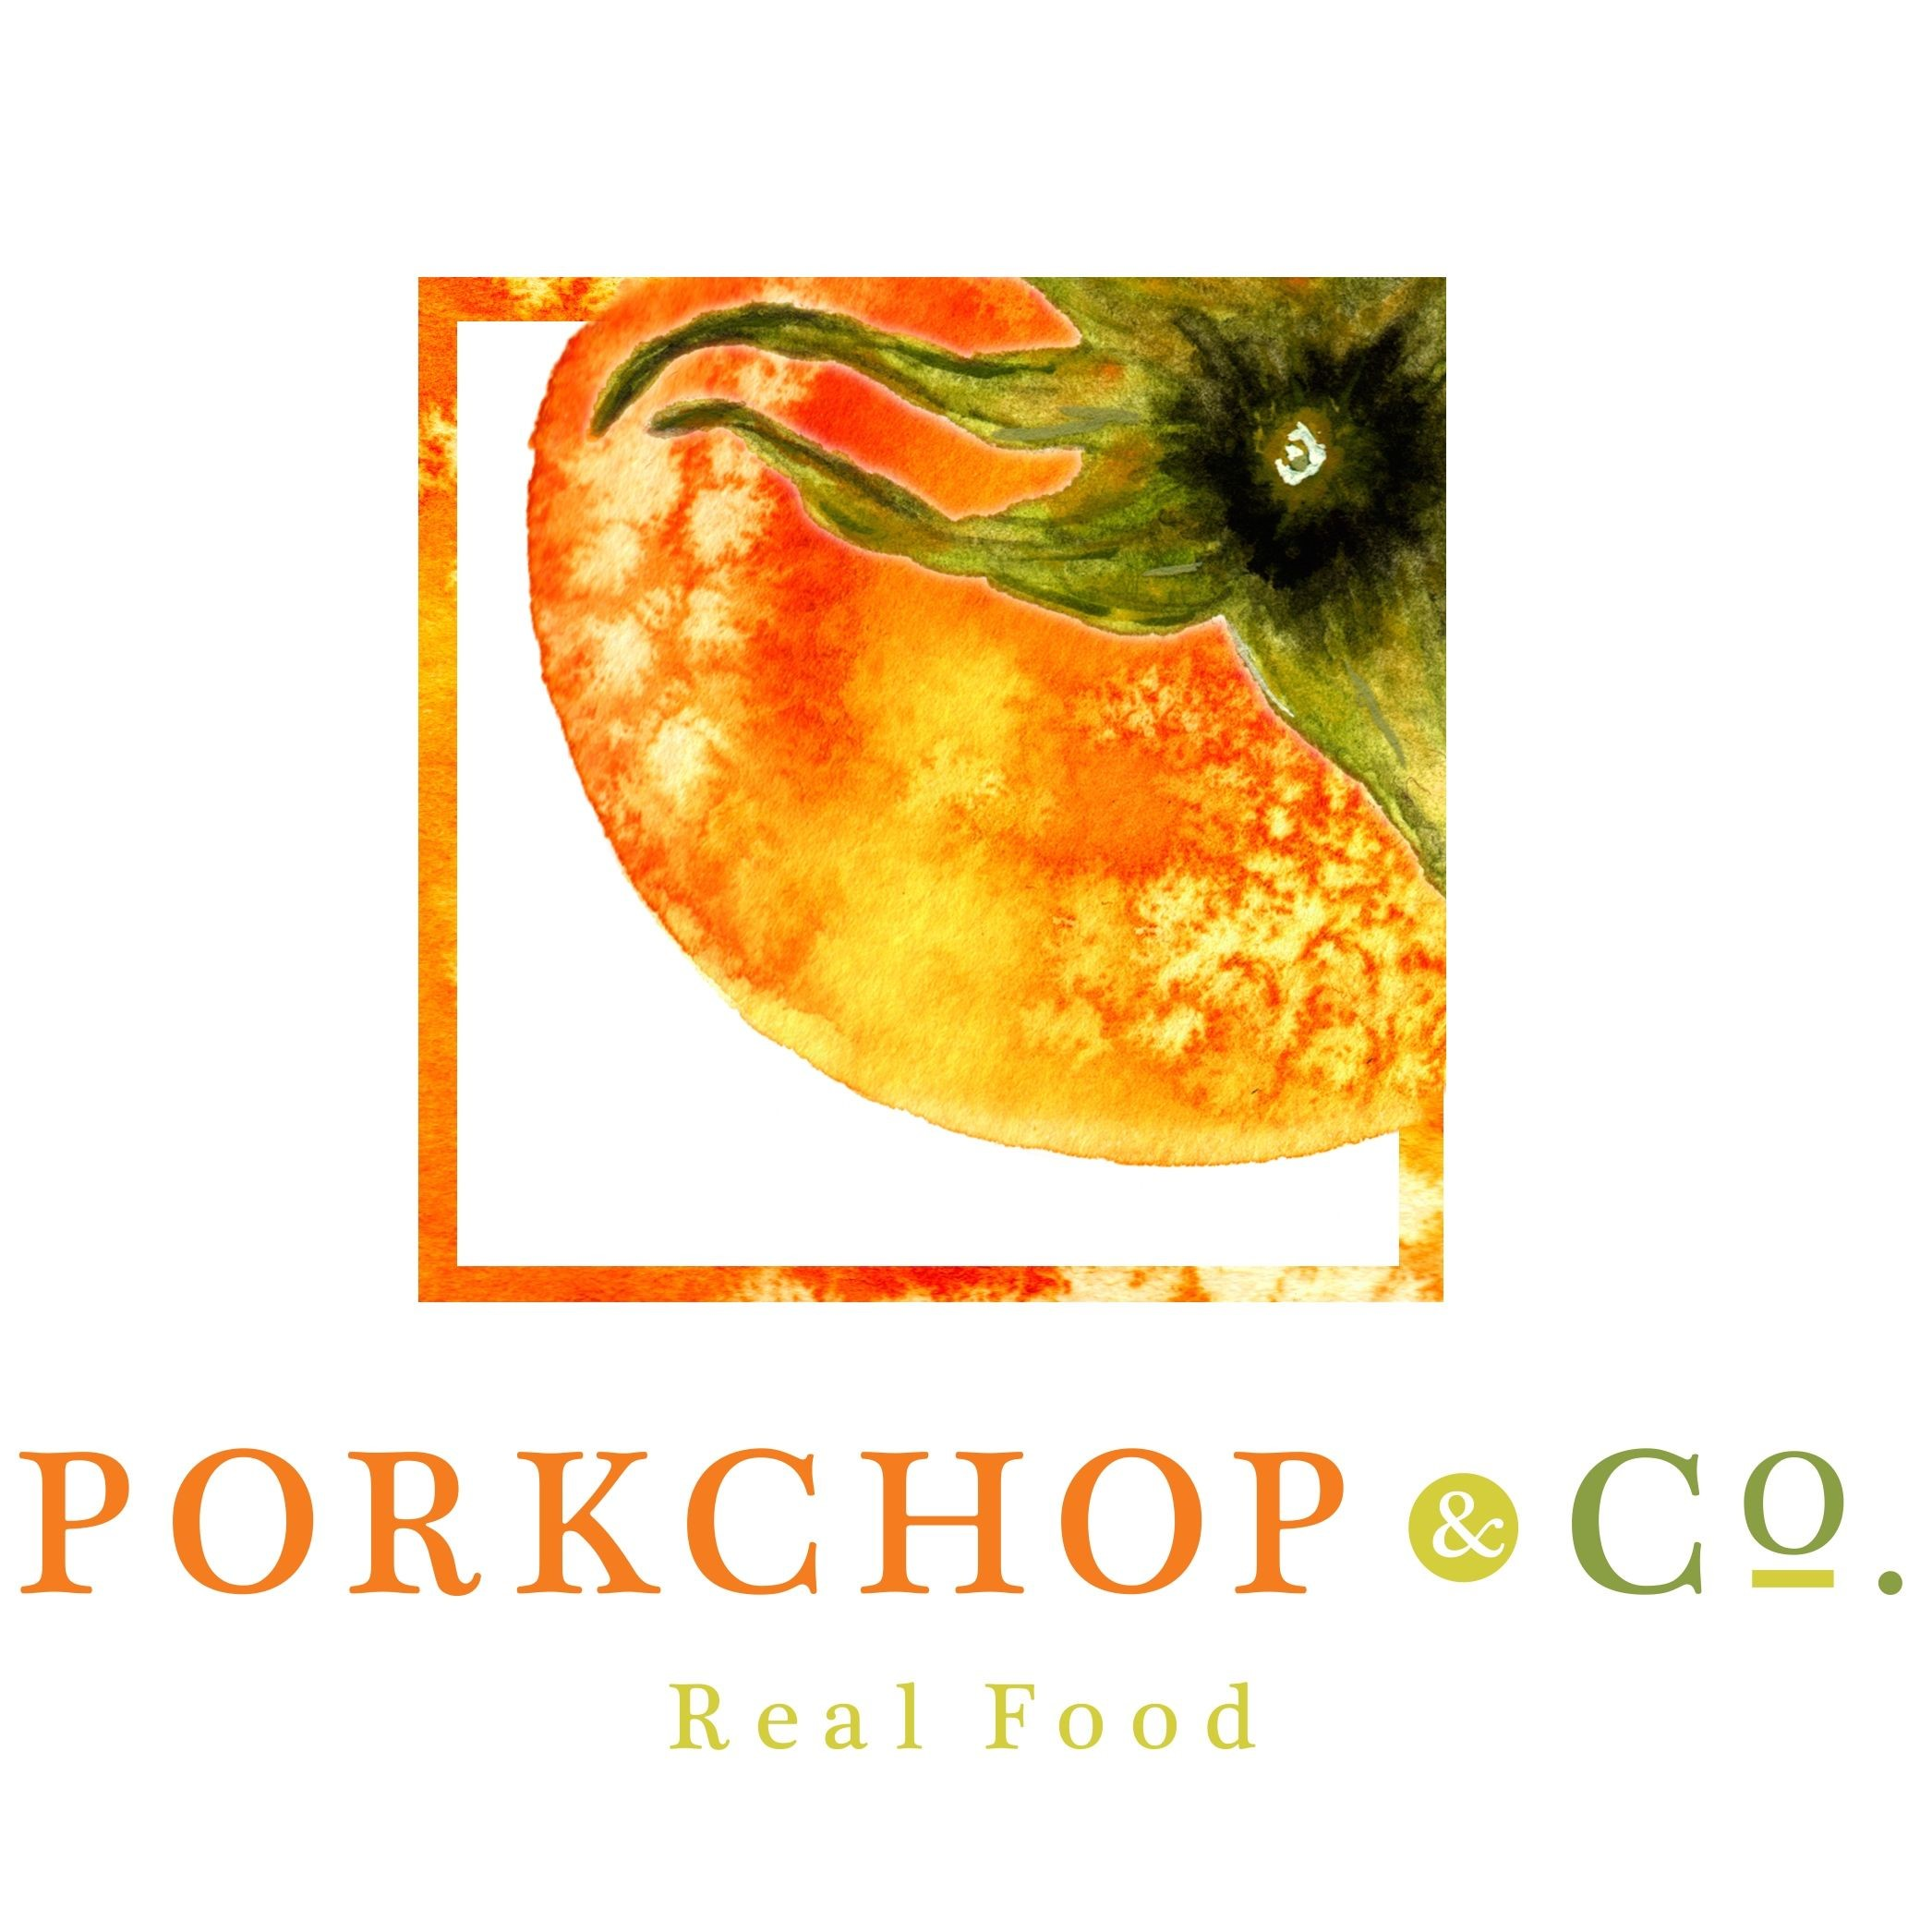 PorkChop & Co.